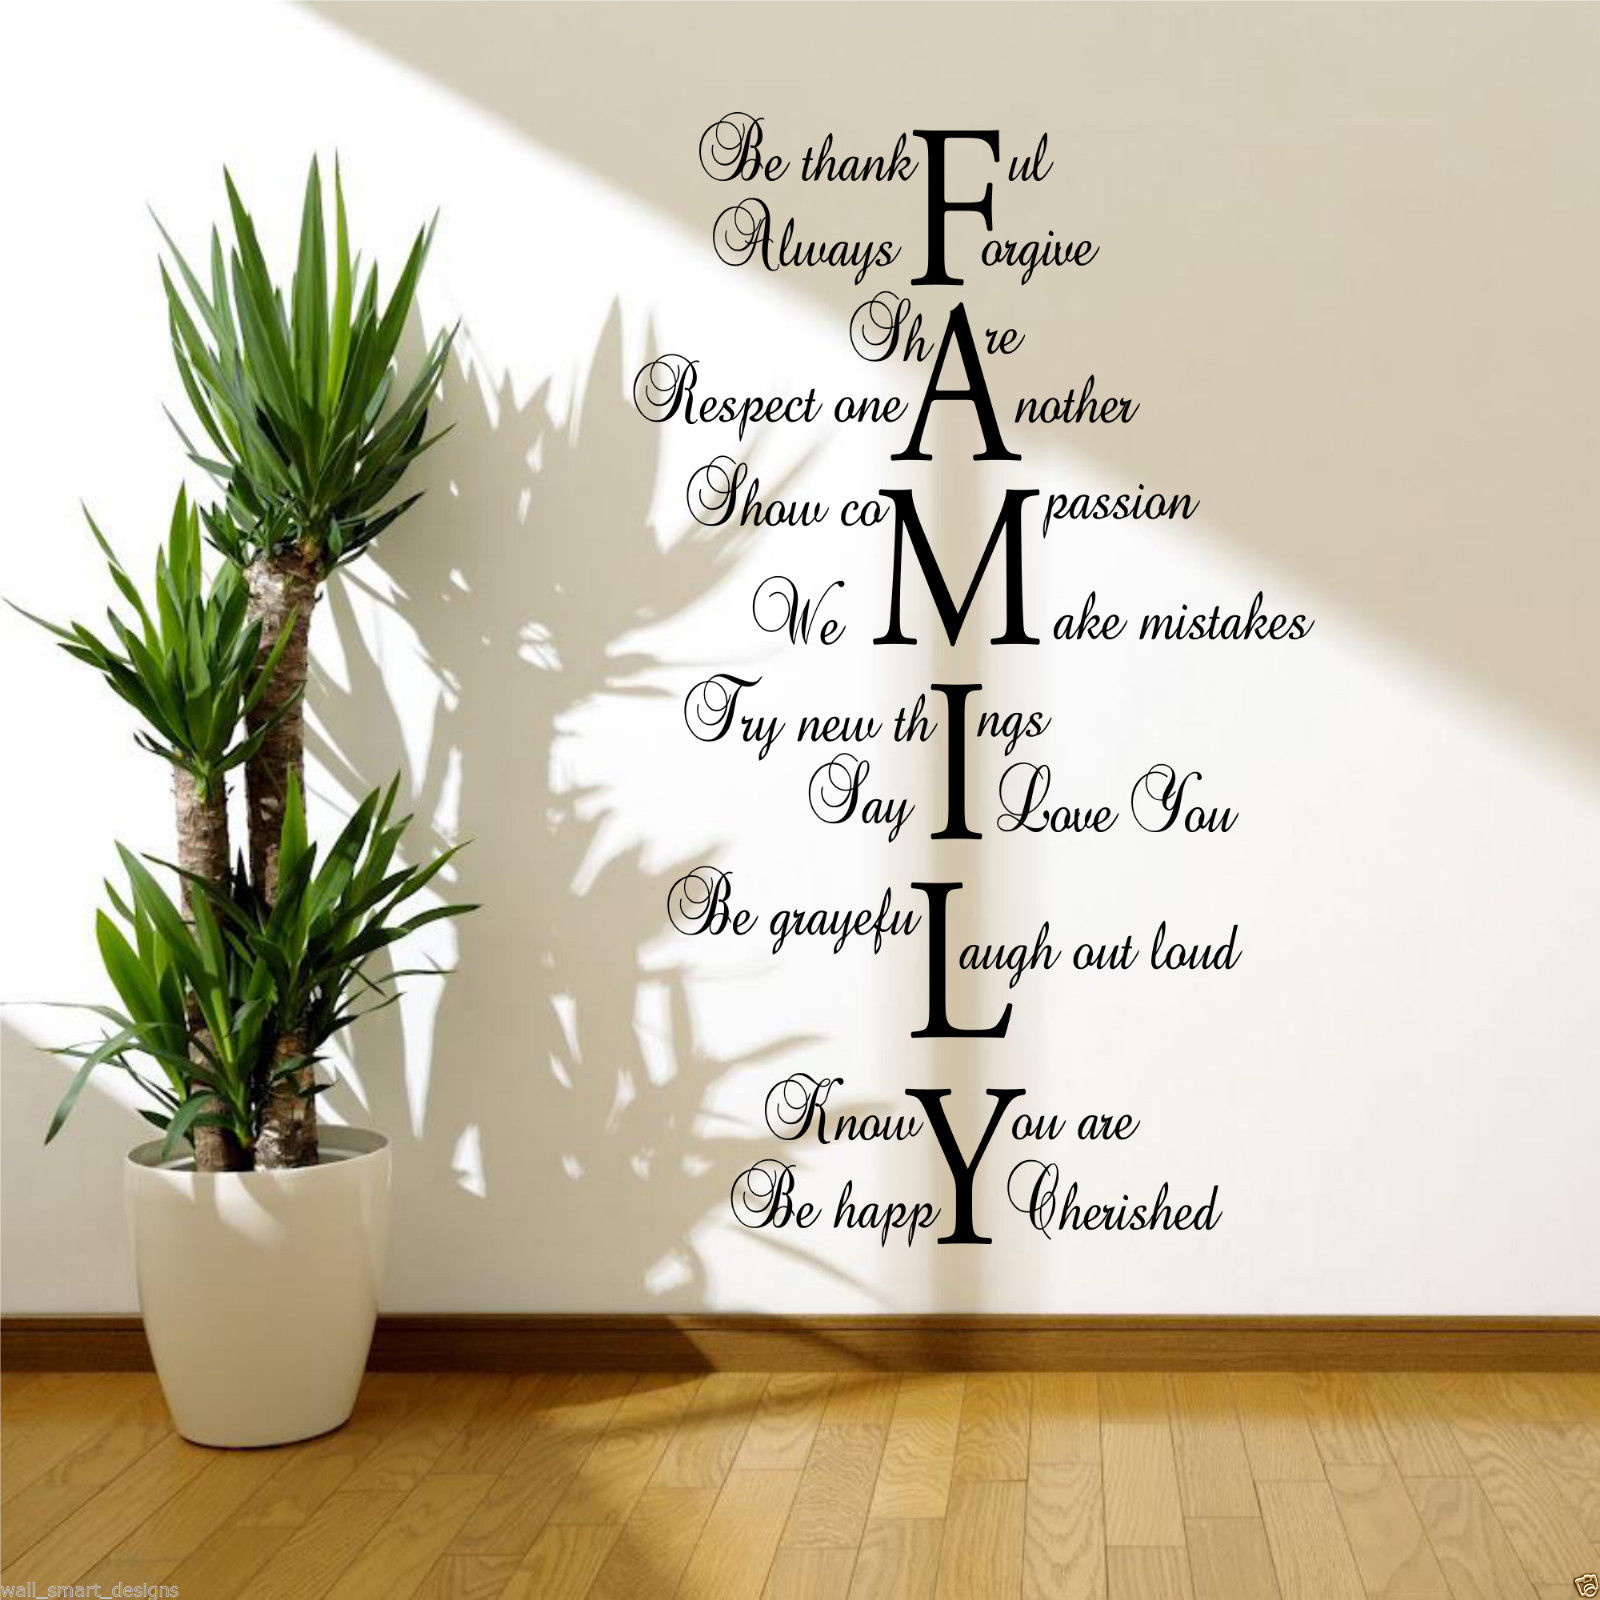 Love Life Family Quotes Family Love Life Wall Art Sticker Quote Room Decal Mural Transfer